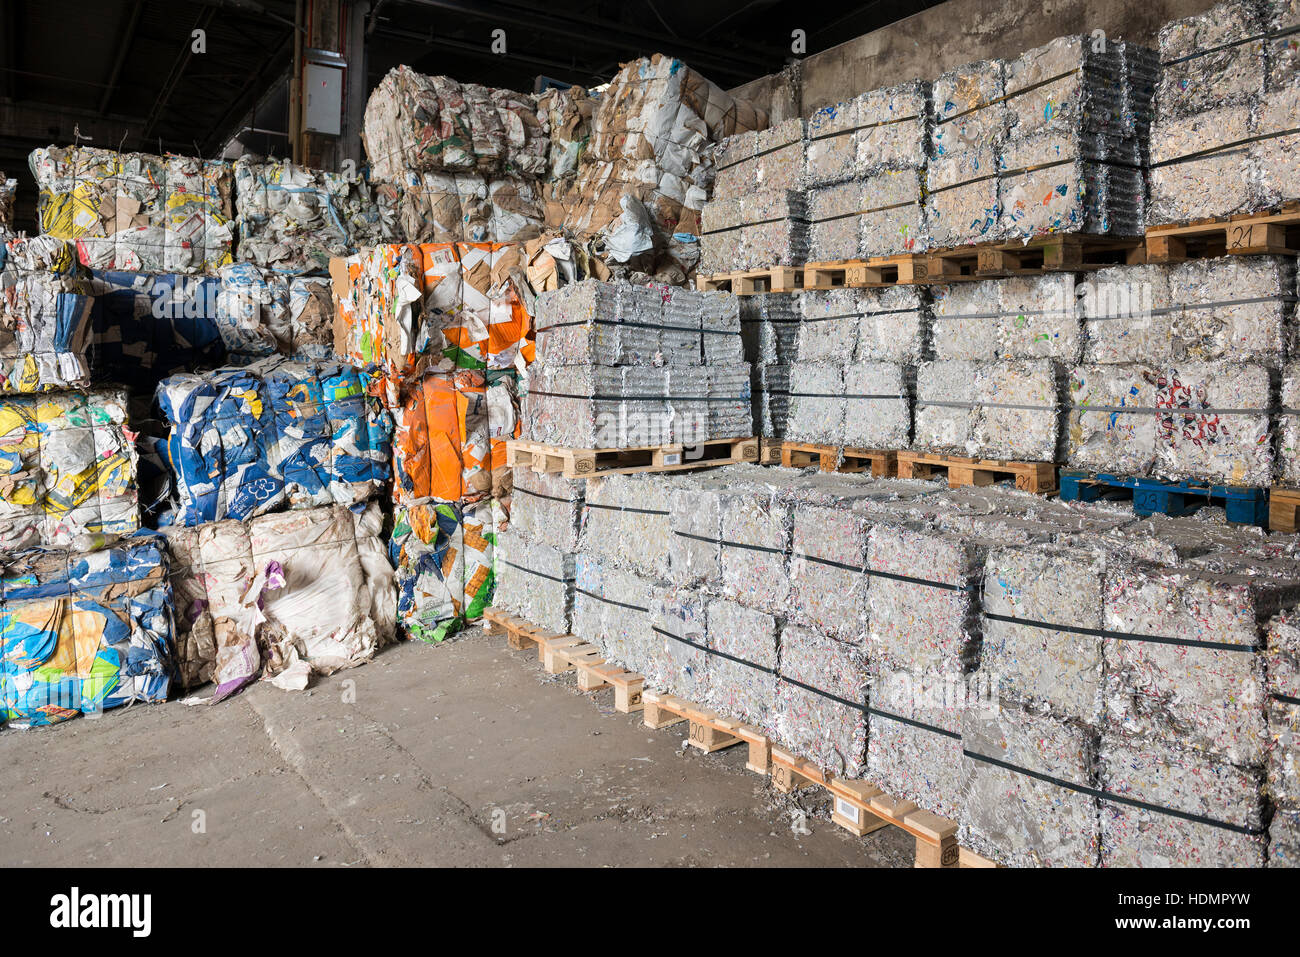 Sorted and baled garbage, plastic, aluminum, paper, recycling - Stock Image